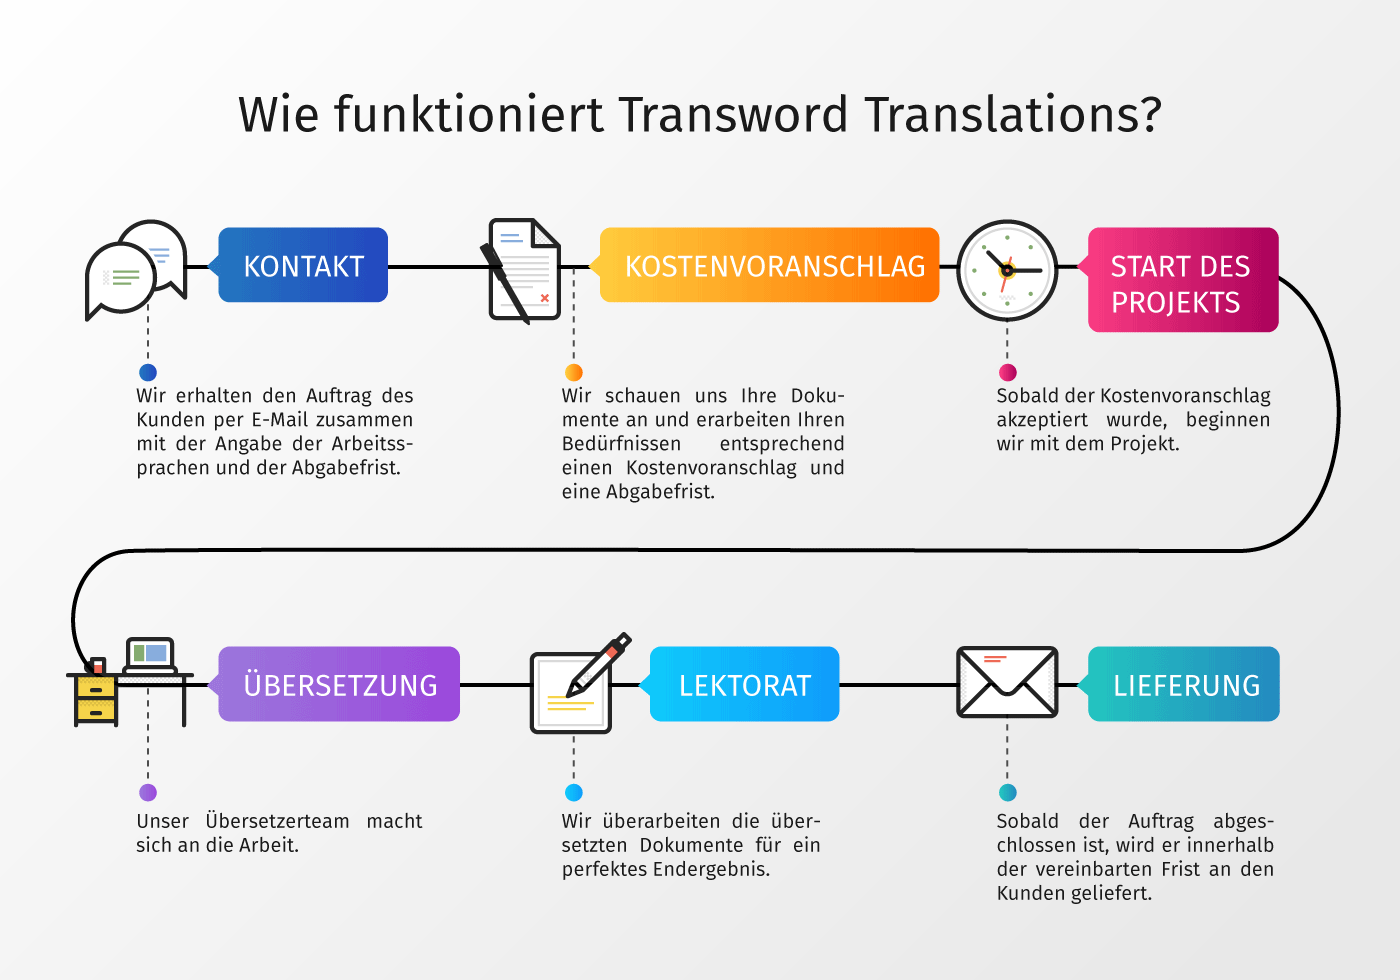 Wie funktioniert Transword Translations?